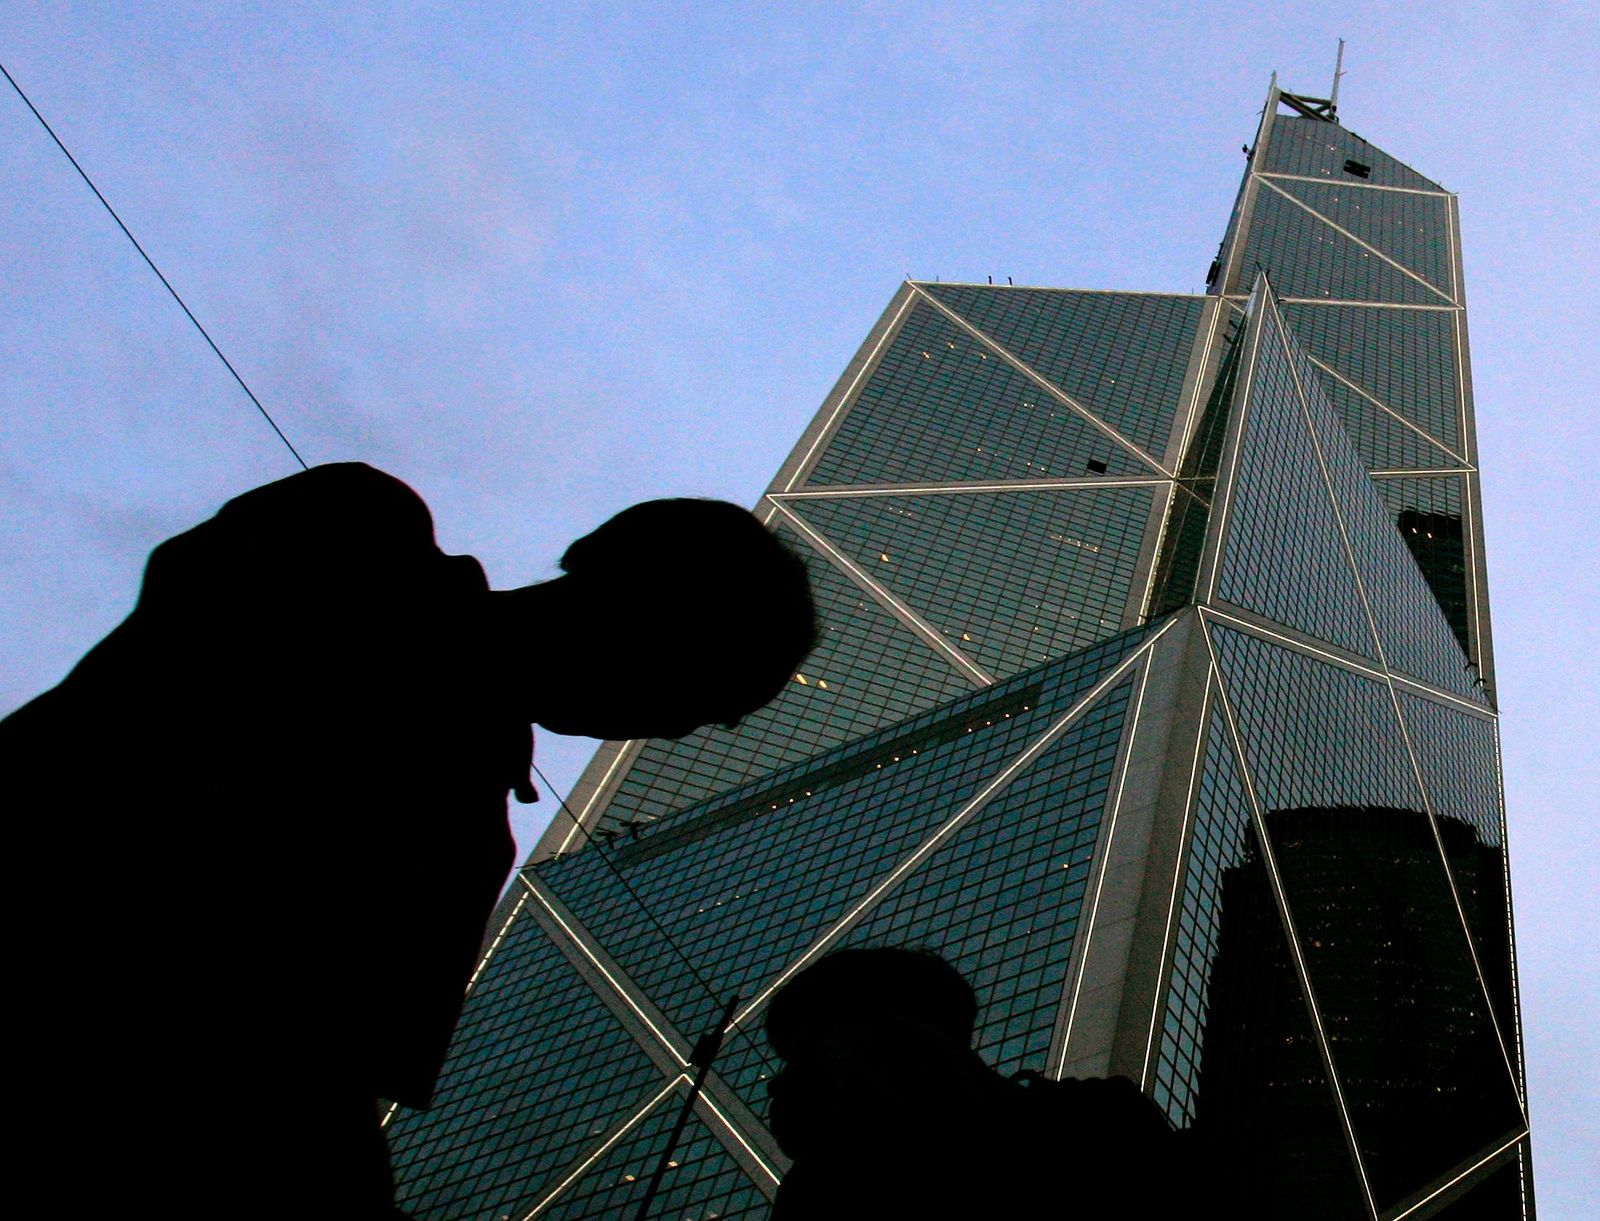 FILE - In this Friday, May 19, 2006, file photo, pedestrians walk past the Bank of China building in Hong Kong, designed by American architect I.M. Pei. Pei, the globe-trotting architect who revived the Louvre museum in Paris with a giant glass pyramid and captured the spirit of rebellion at the multi-shaped Rock and Roll Hall of Fame, has died at age 102, a spokesman confirmed Thursday, May 16, 2019. (AP Photo/Kin Cheung, File)